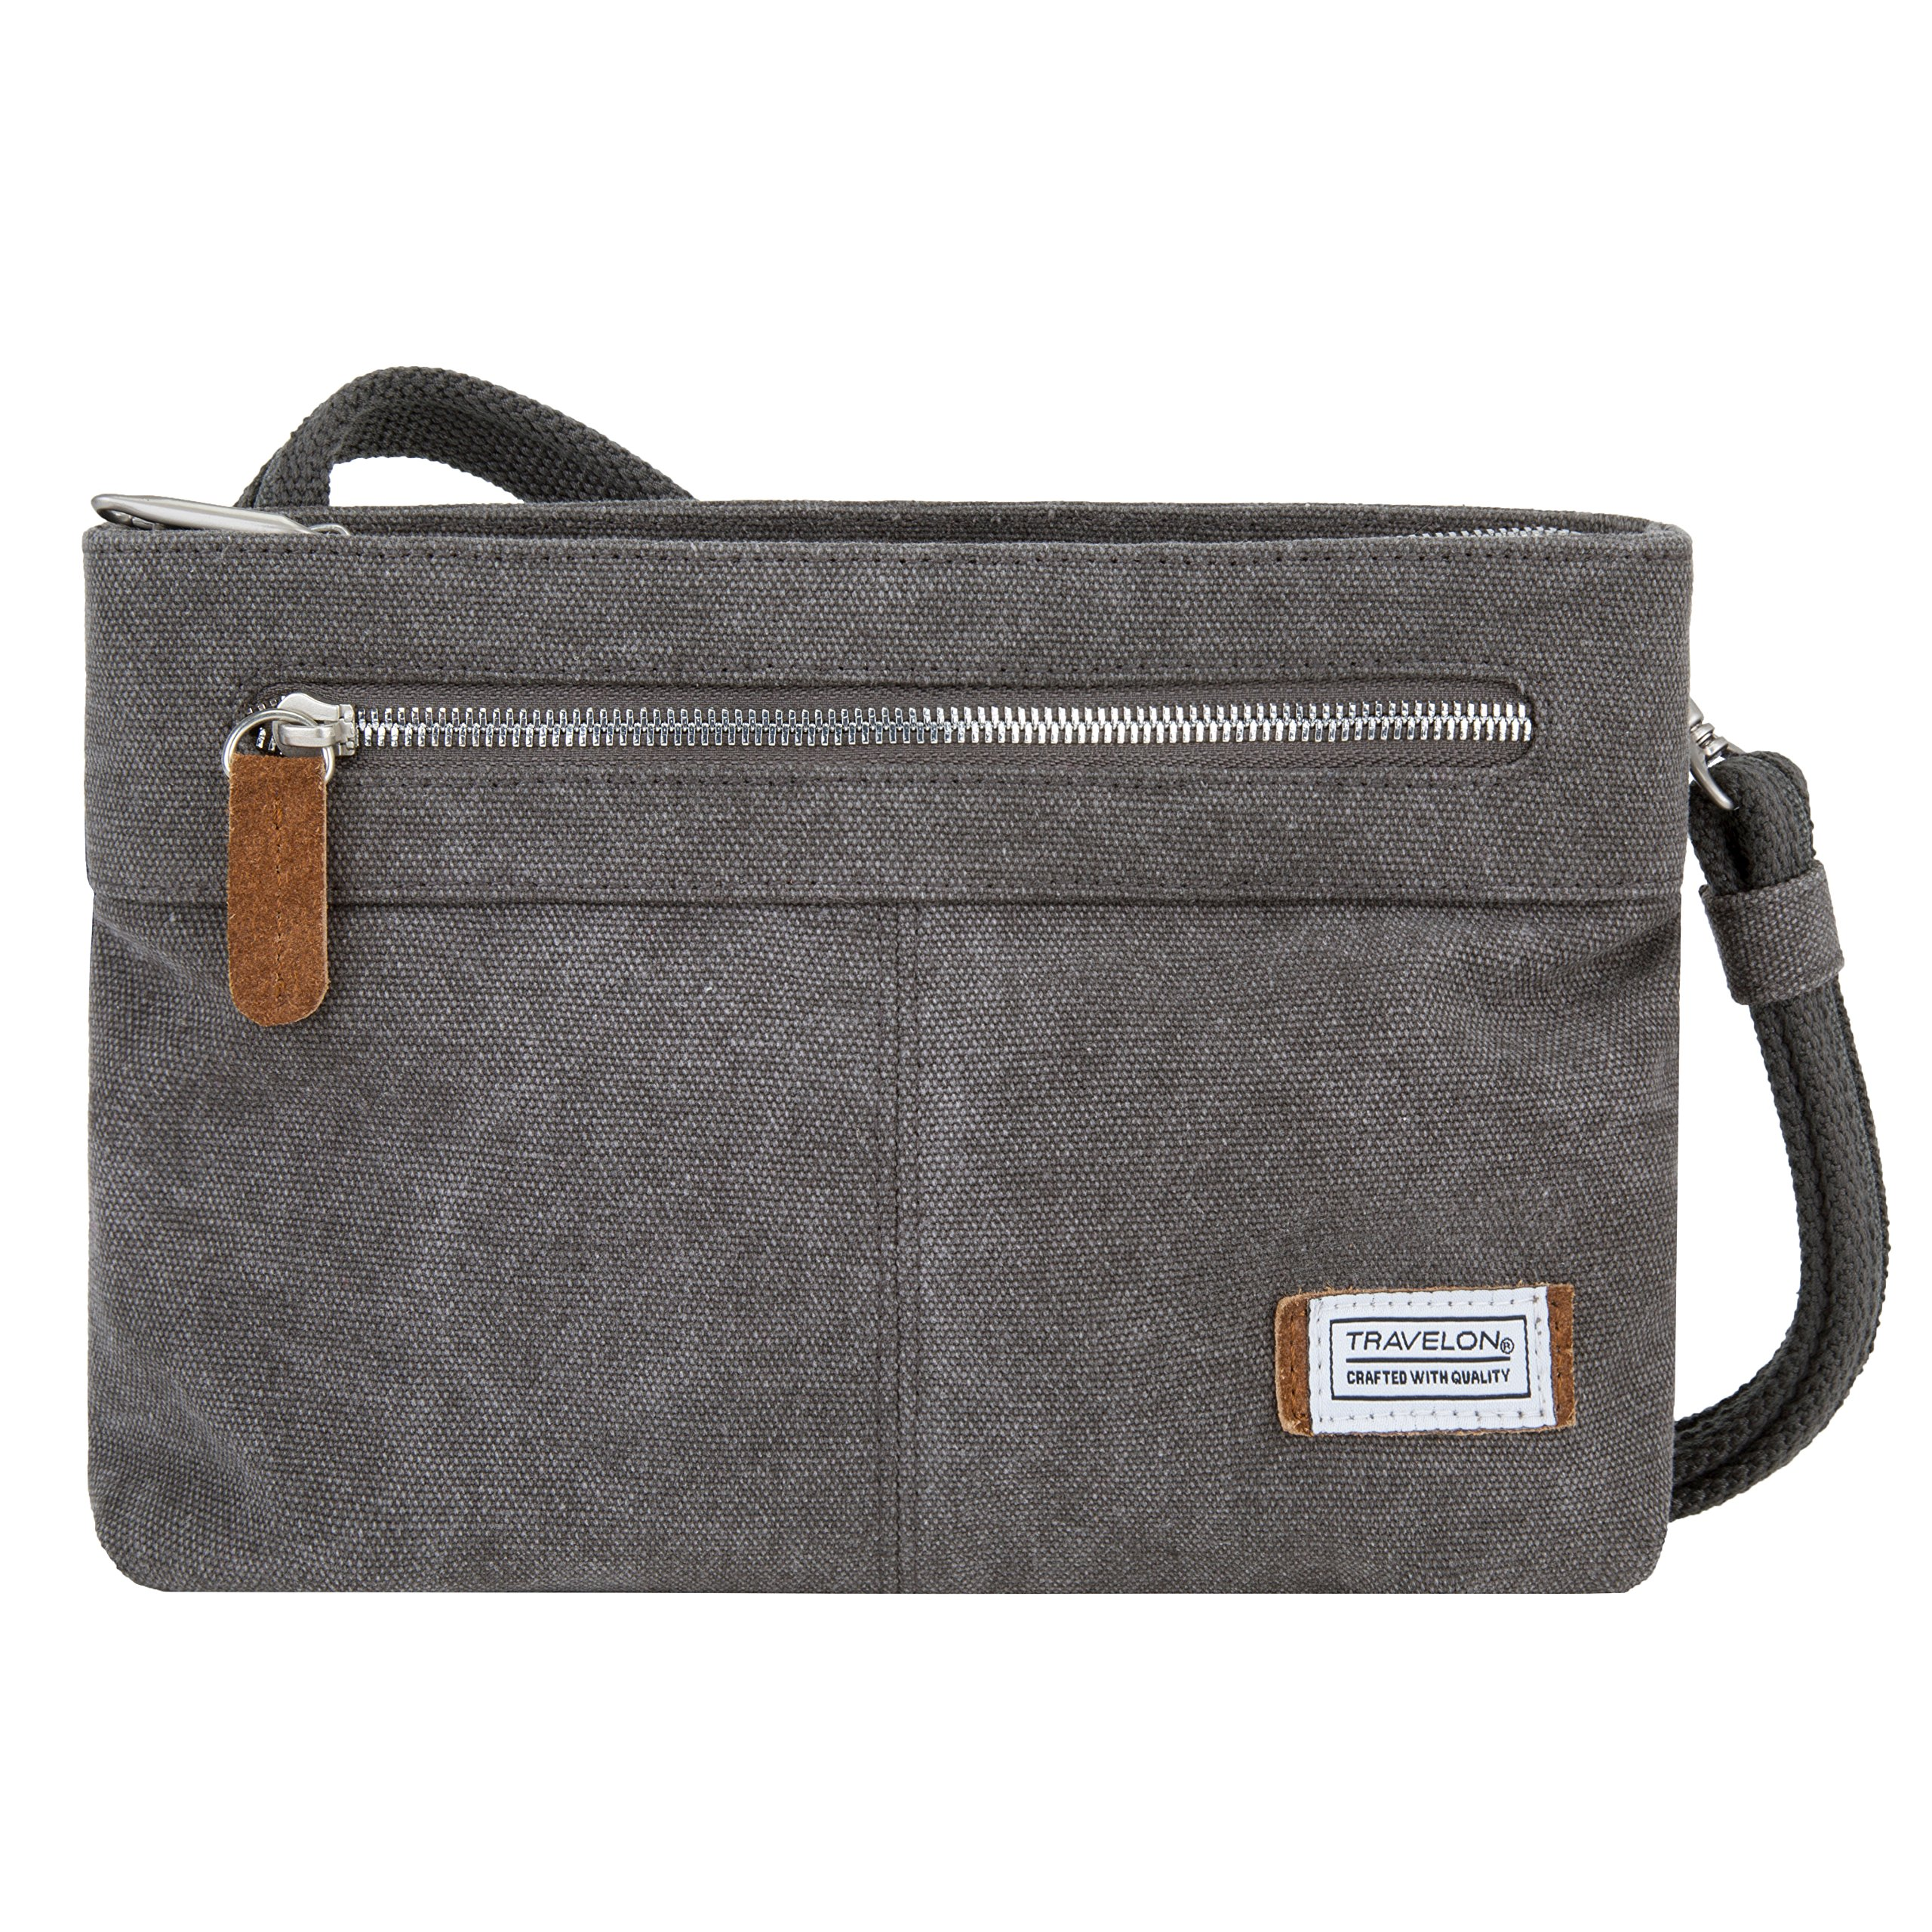 Travelon Women's Anti-Theft Heritage Small Crossbody Cross Body Bag, Pewter, One Size